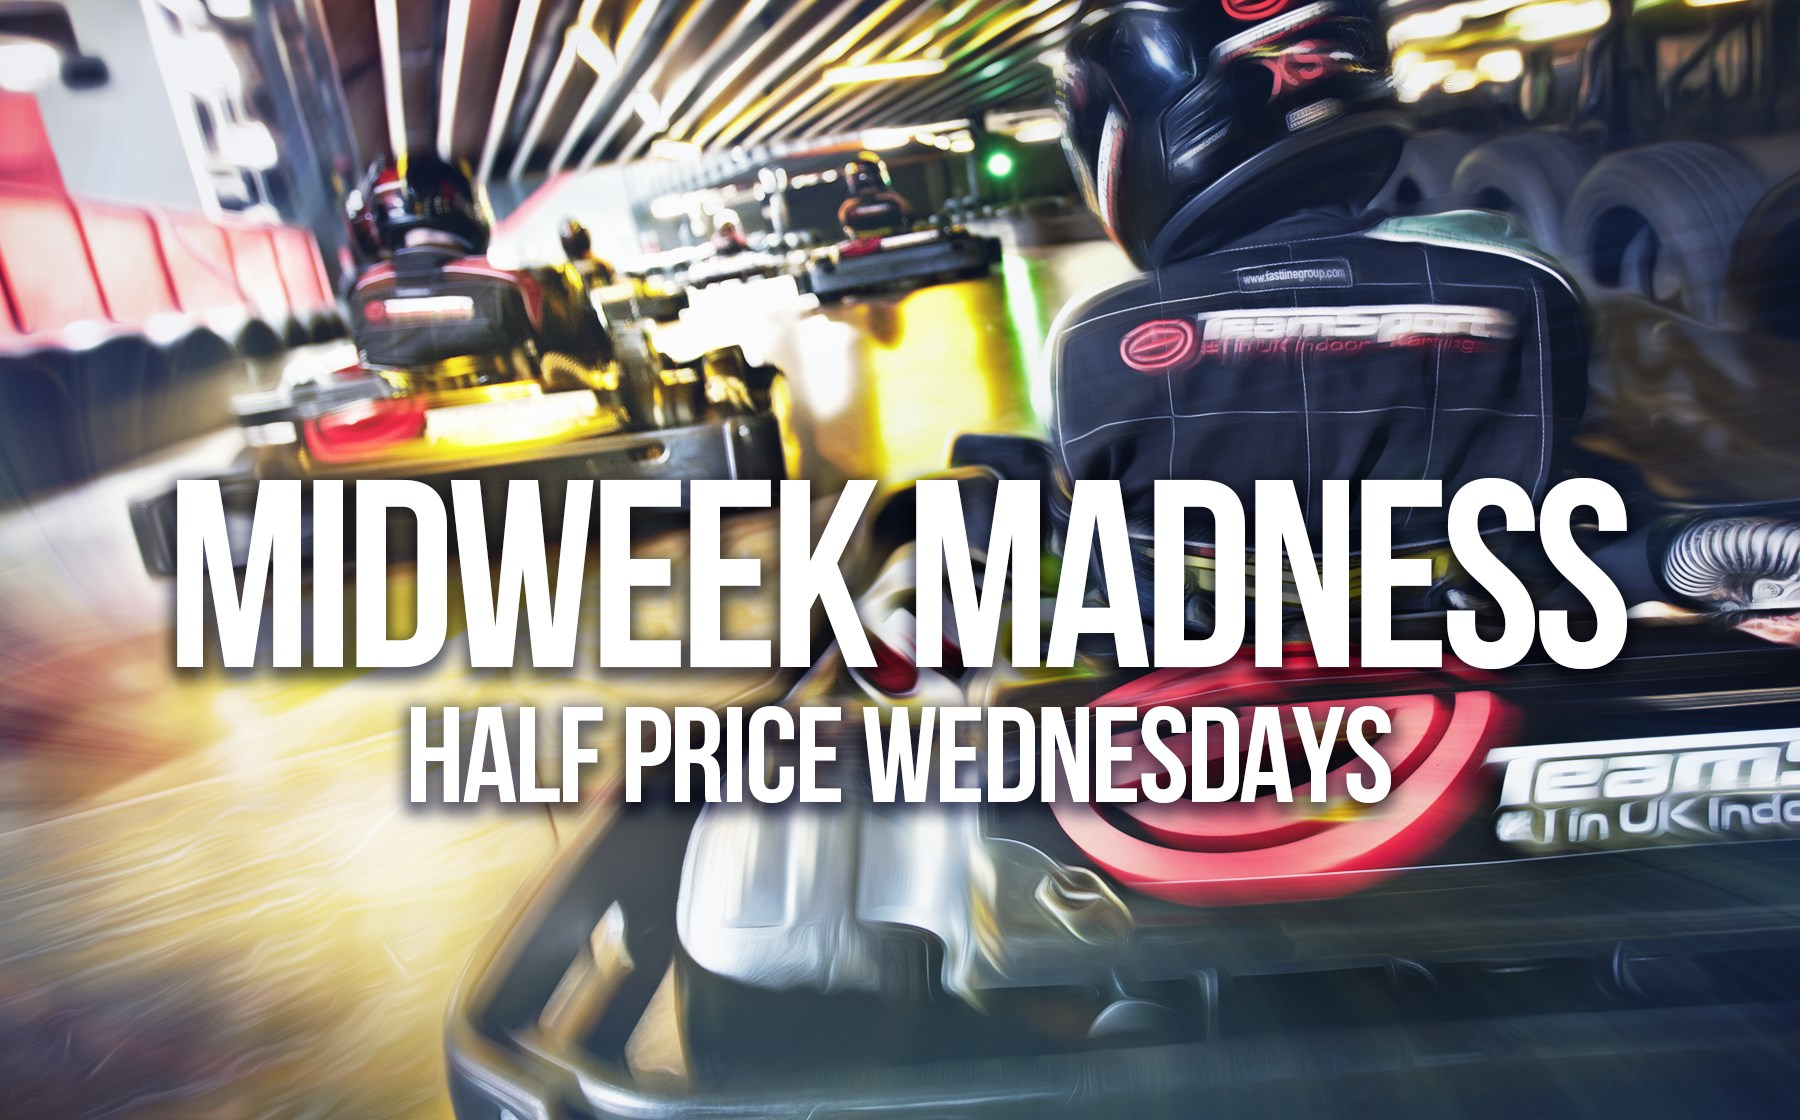 GO KARTING OFFERS - MIDWEEK KARTING MADNESS